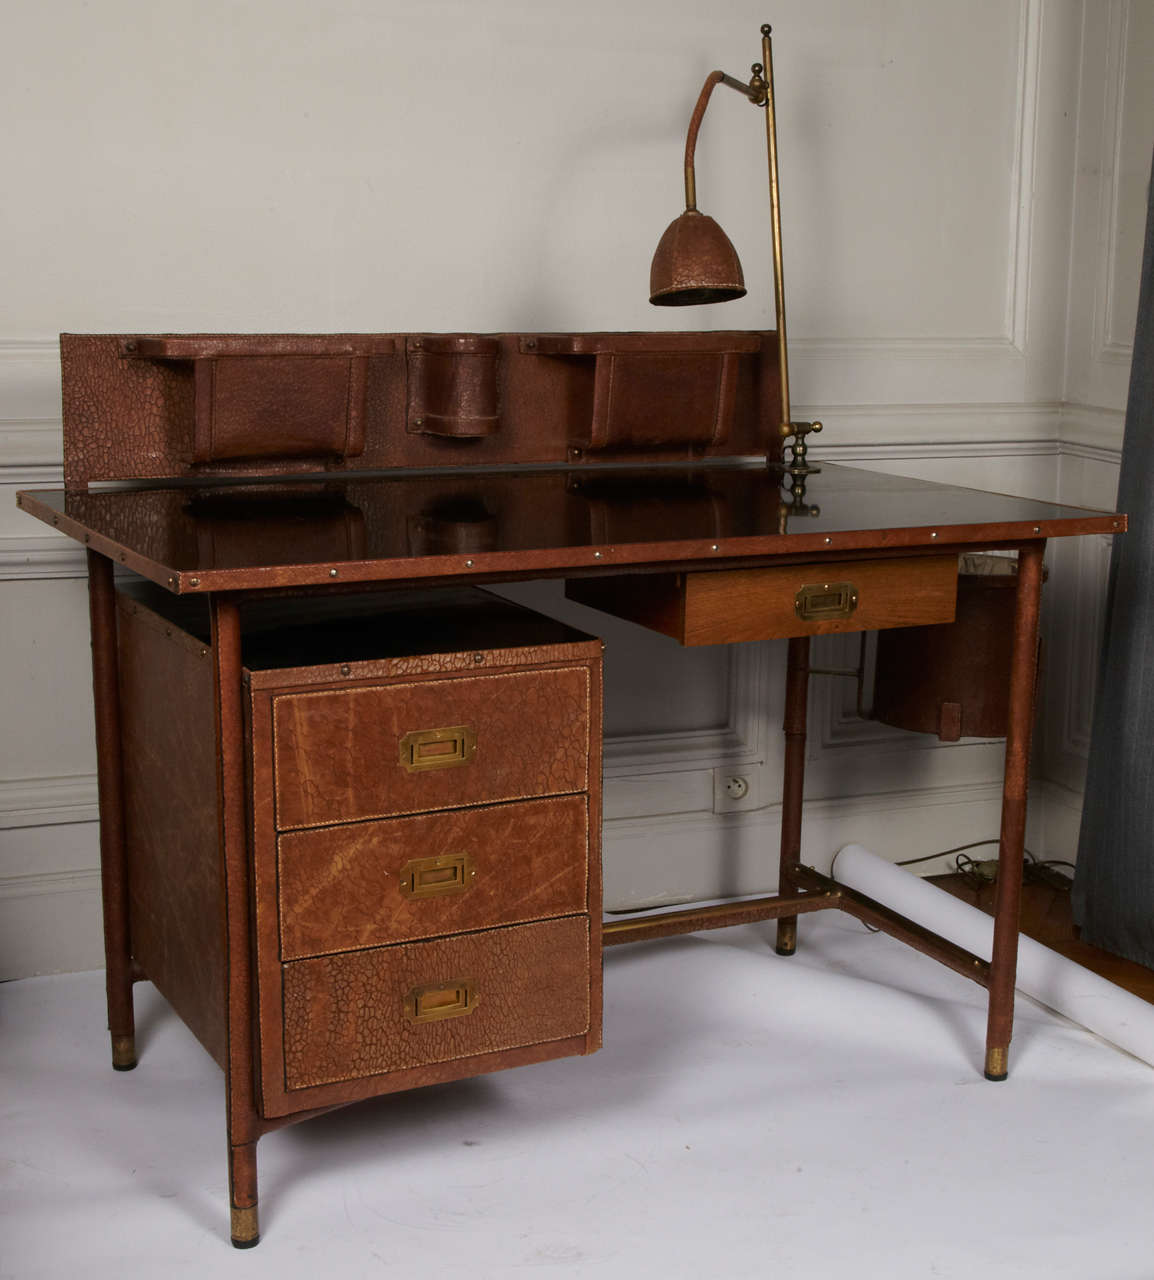 Rare Jacques Adnet desk with lamp, book rack and bin.